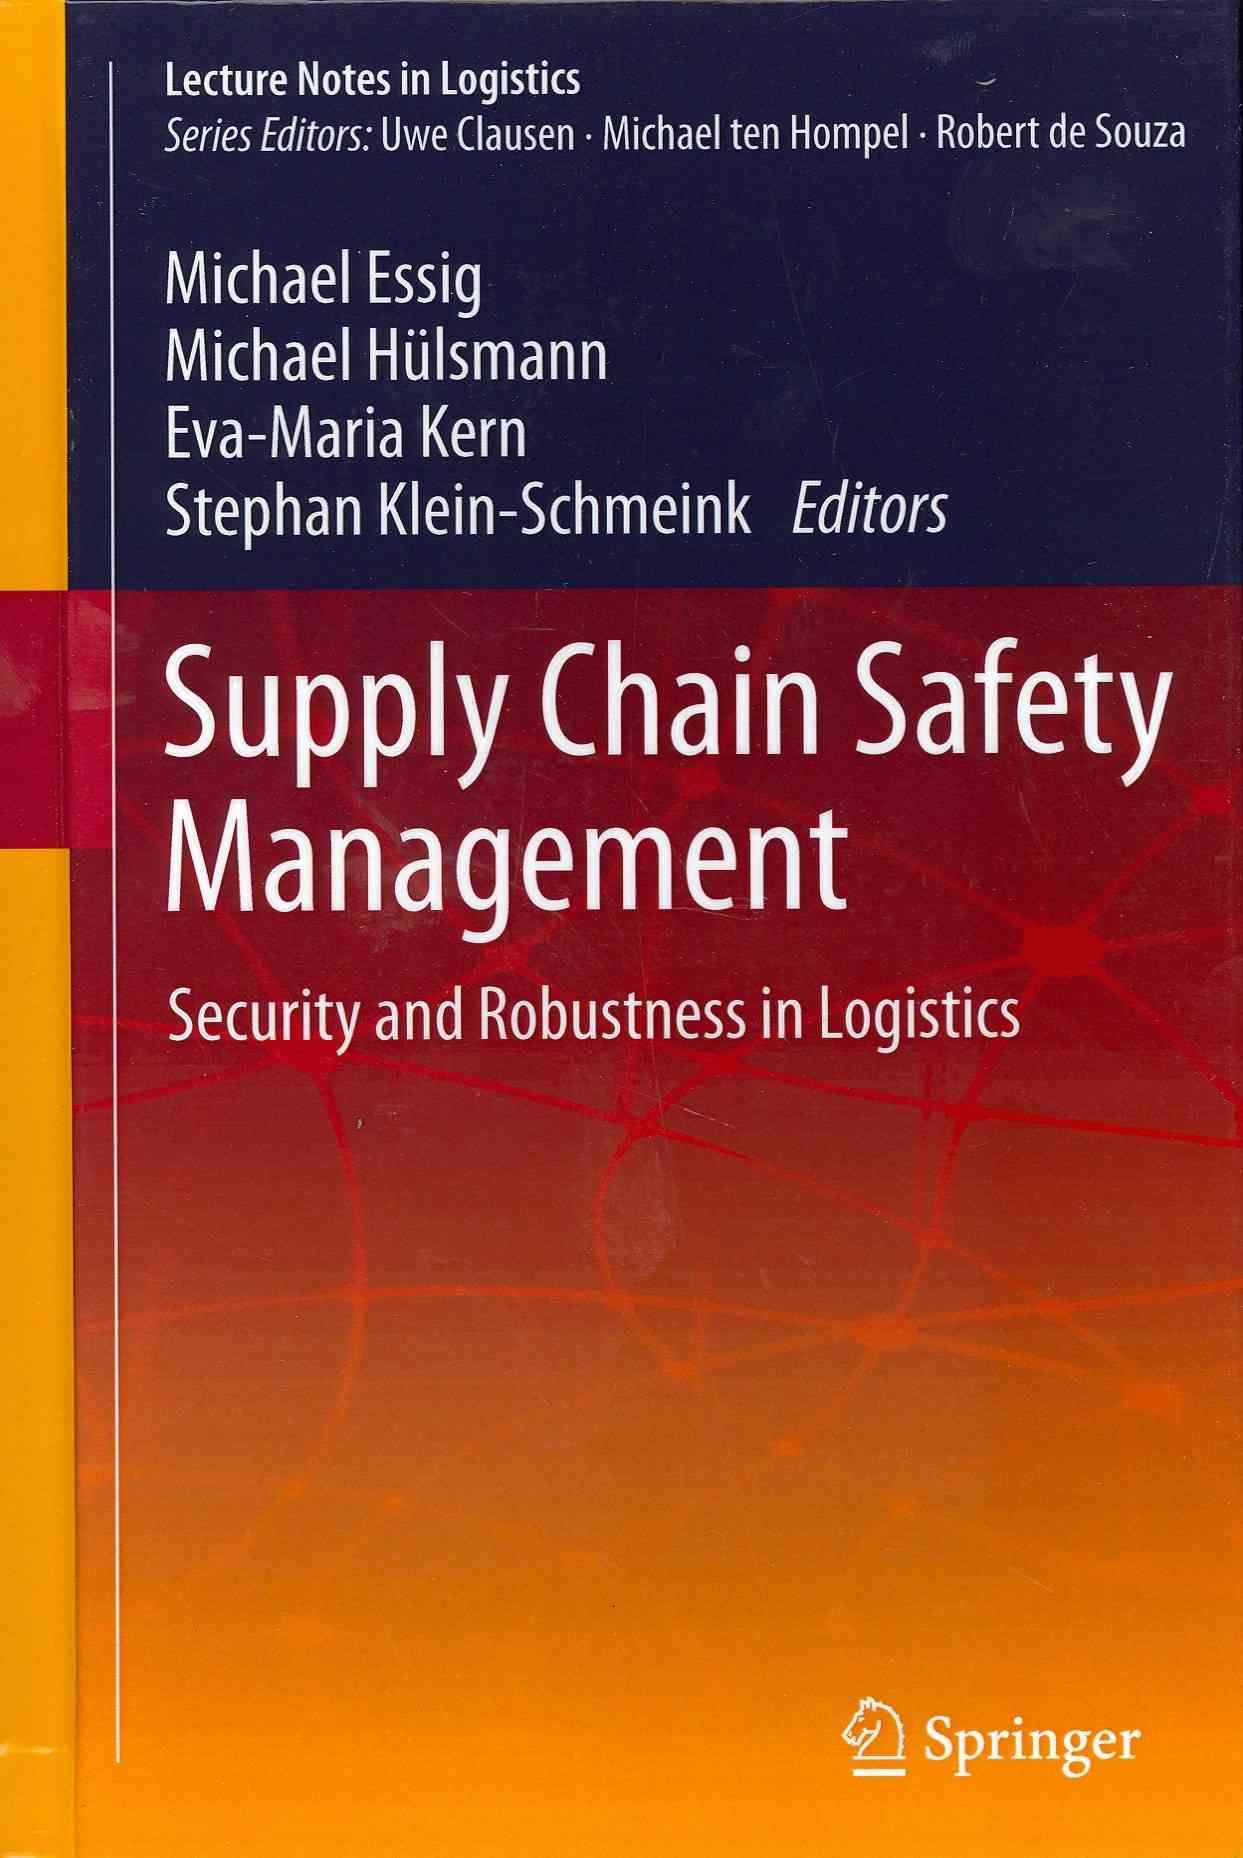 Supply Chain Safety Management: Security and Robustness in Logistics